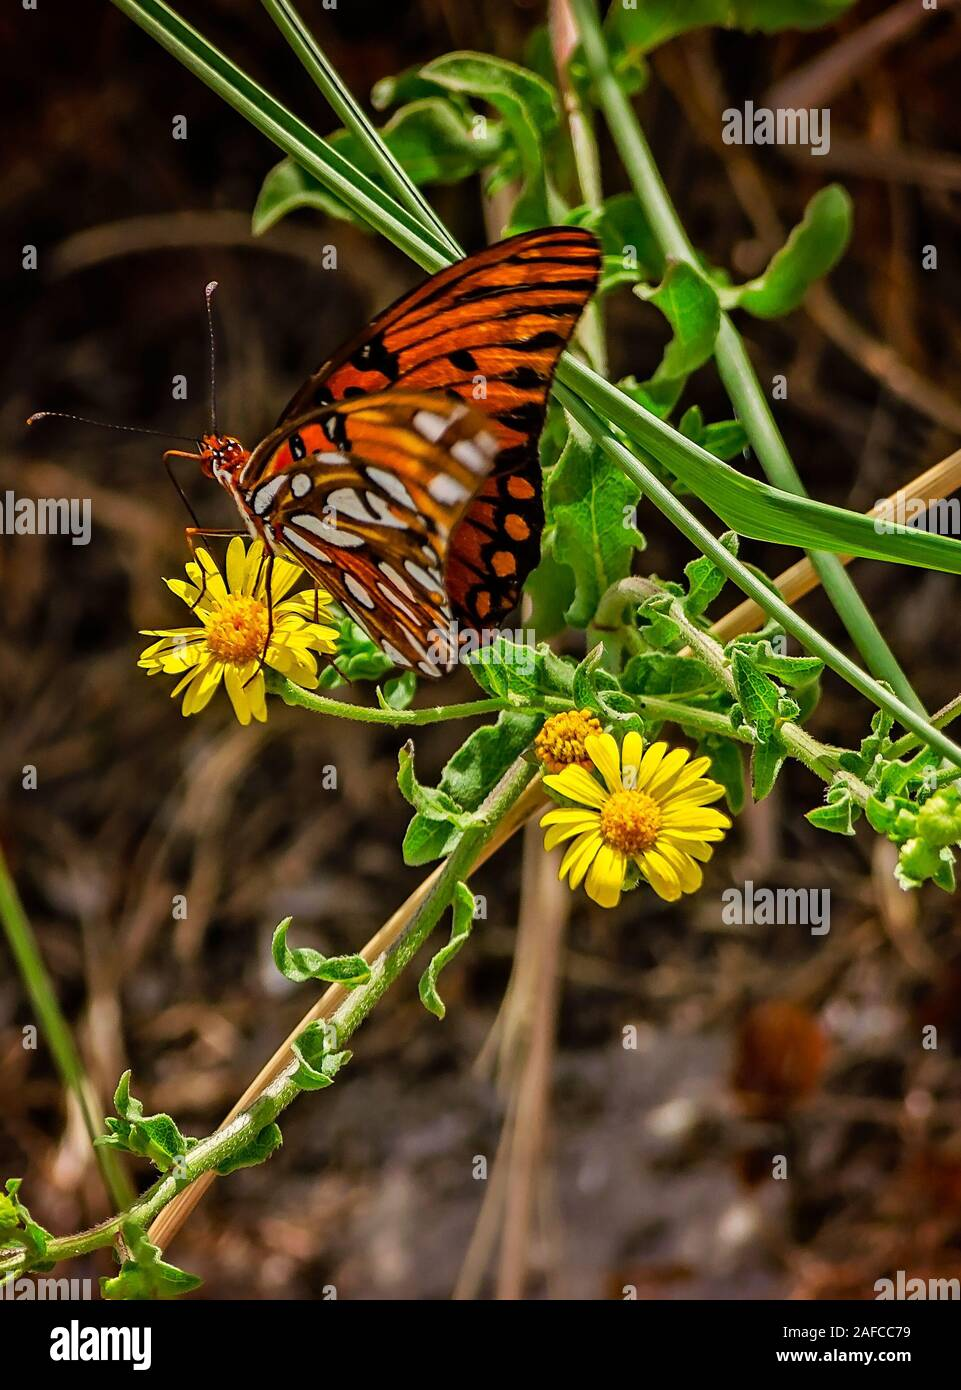 Gulf Fritillary Butterfly On A Flower High Resolution Stock Photography And Images Alamy